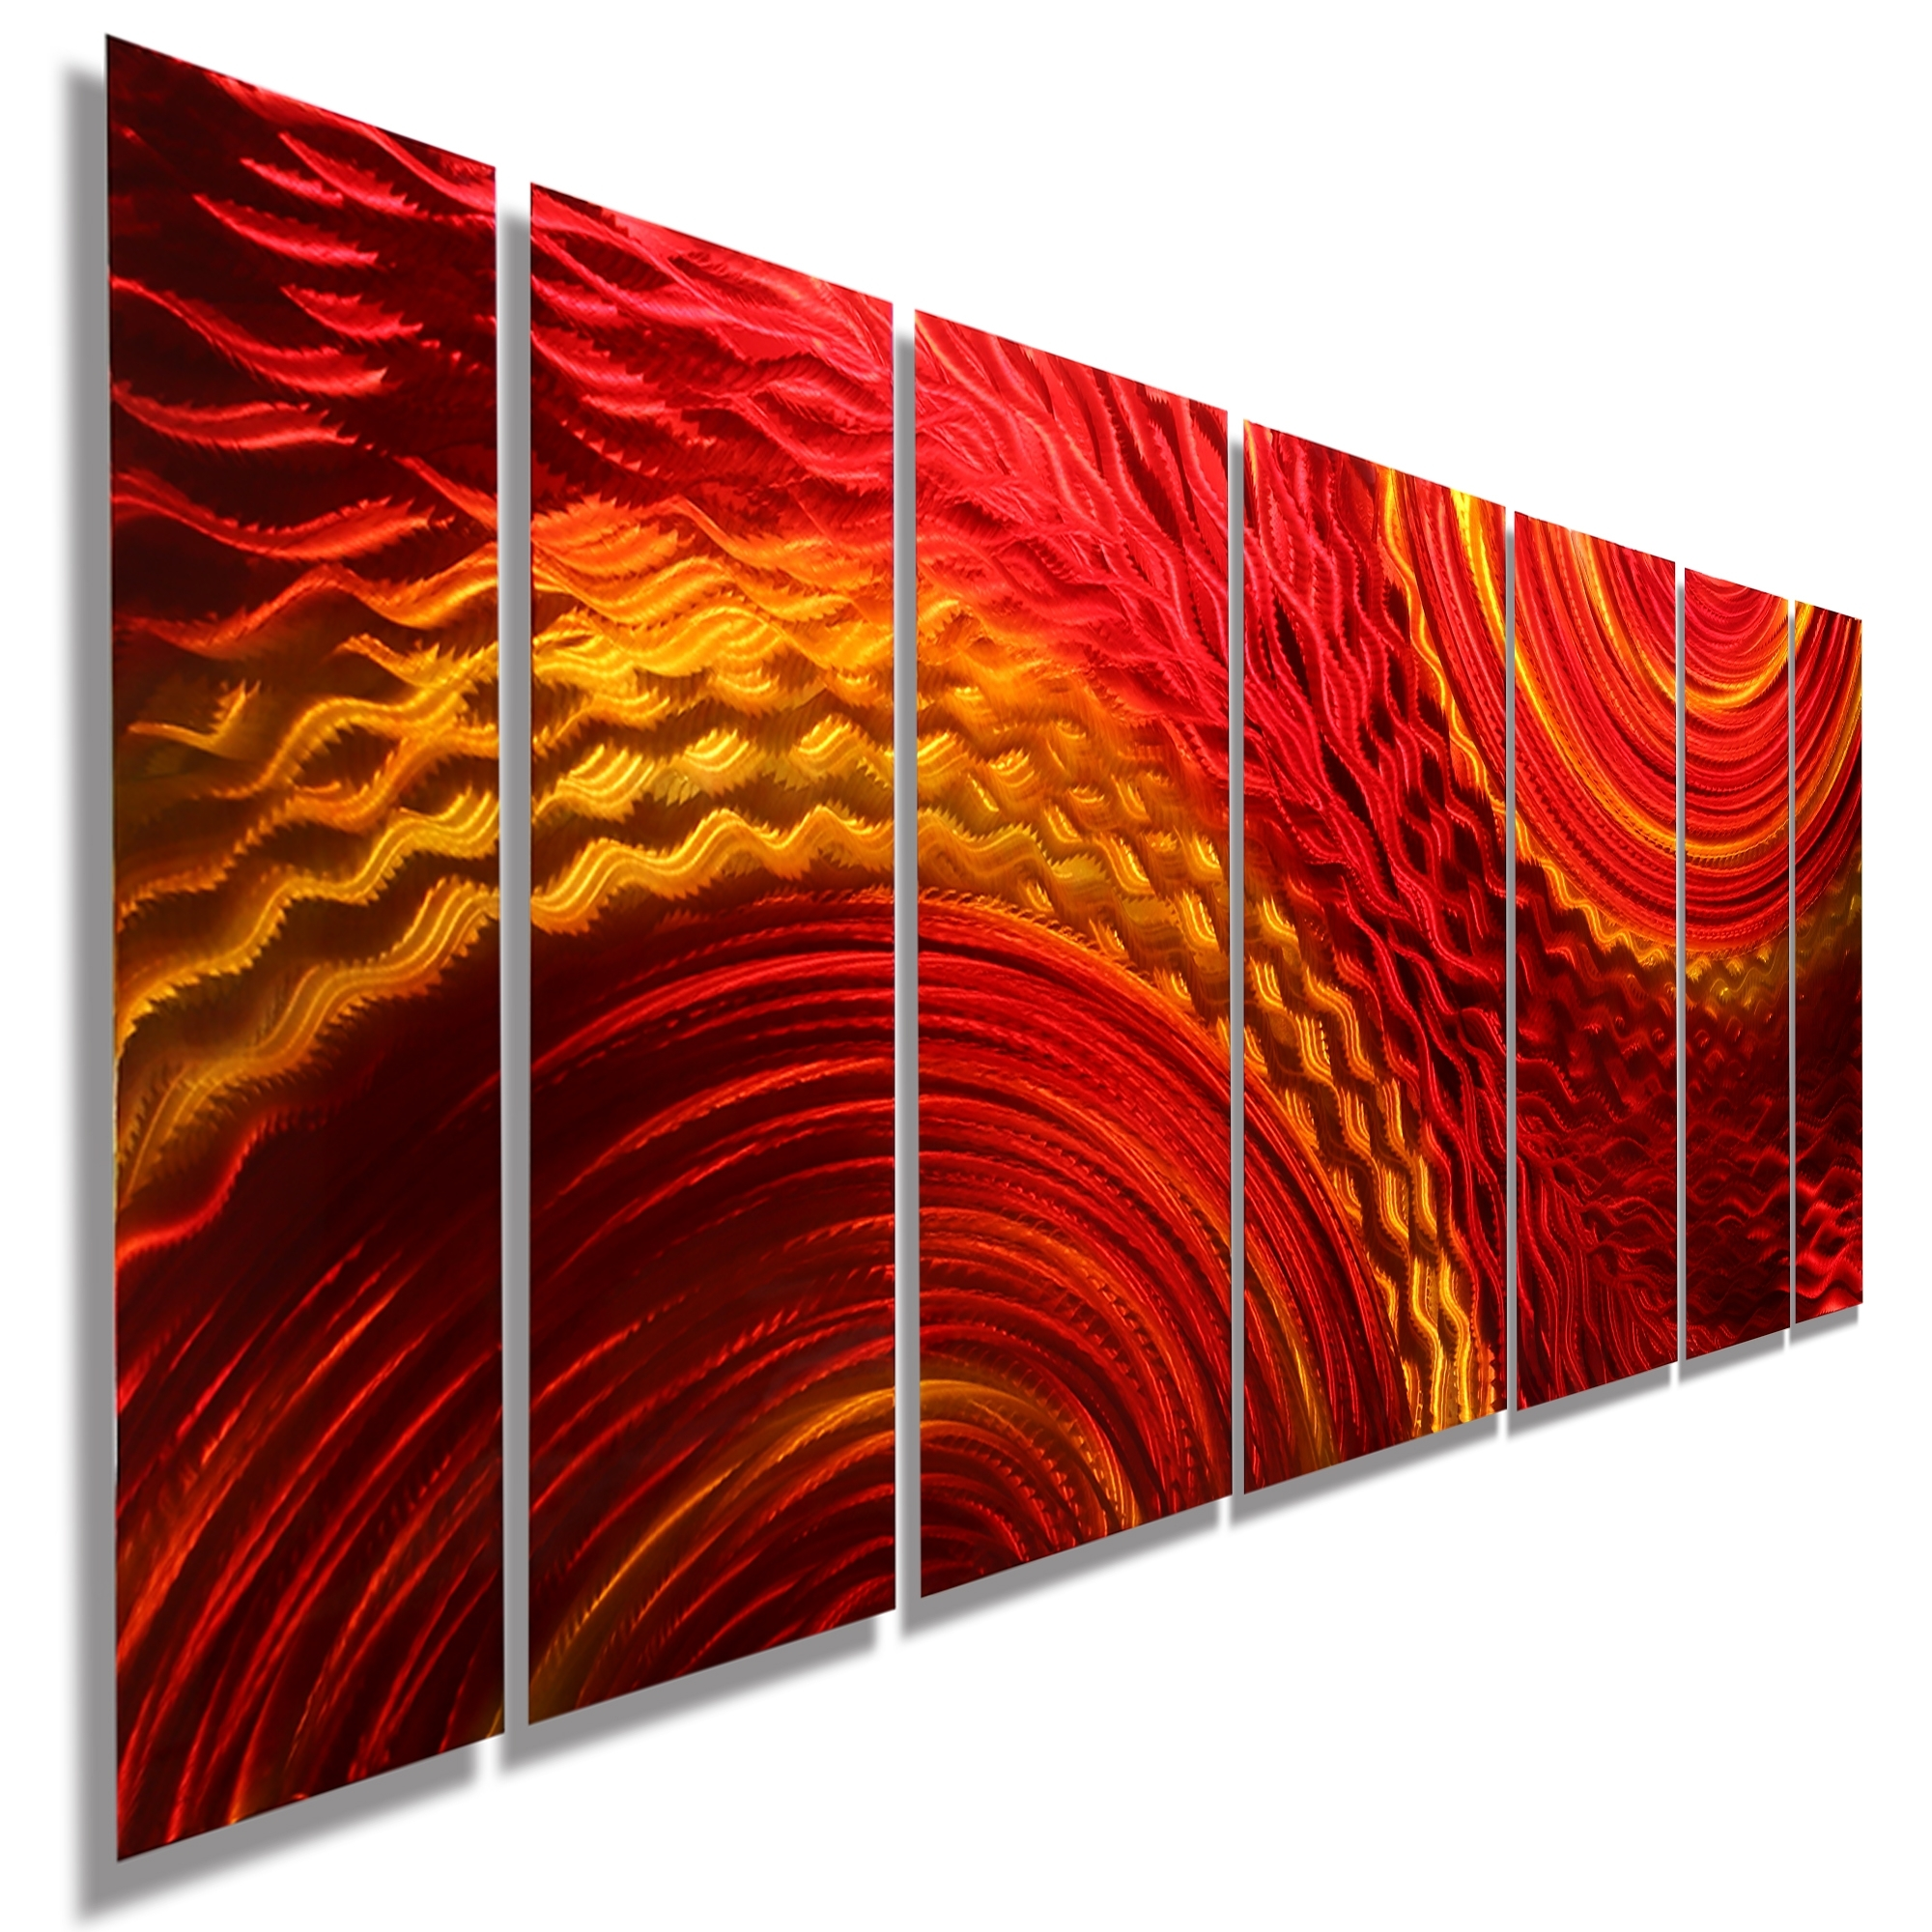 Best And Newest Home Decor: Alluring Abstract Metal Wall Art With Harvest Moods Xl Intended For Abstract Wall Art Australia (View 6 of 15)